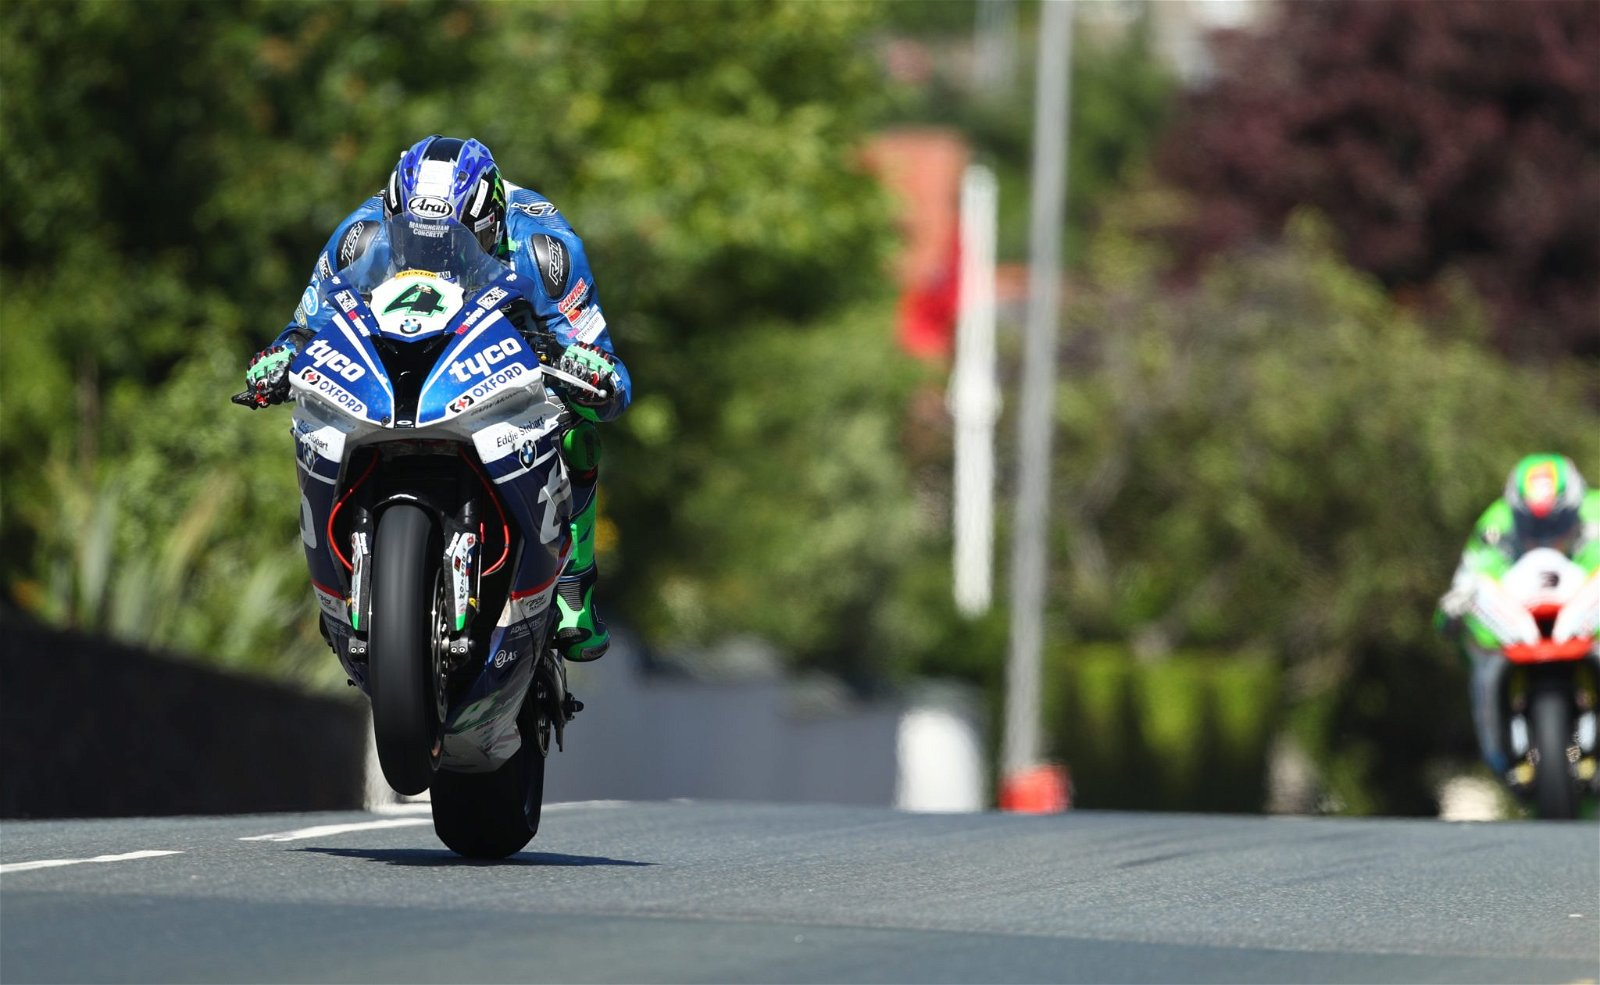 Ian Hutchinson TT 2017 image by Double Red